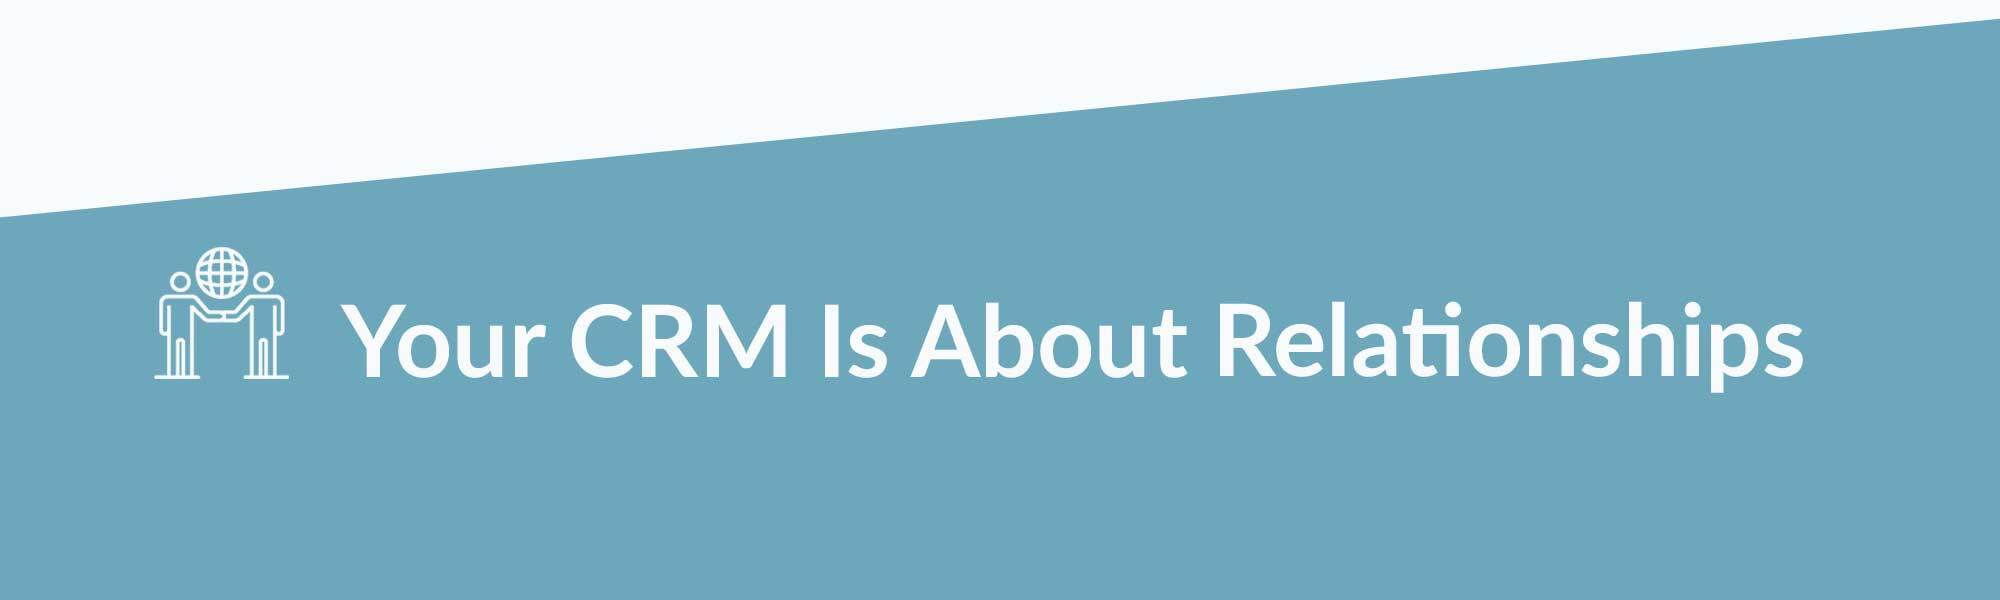 header image for your crm is about relationships